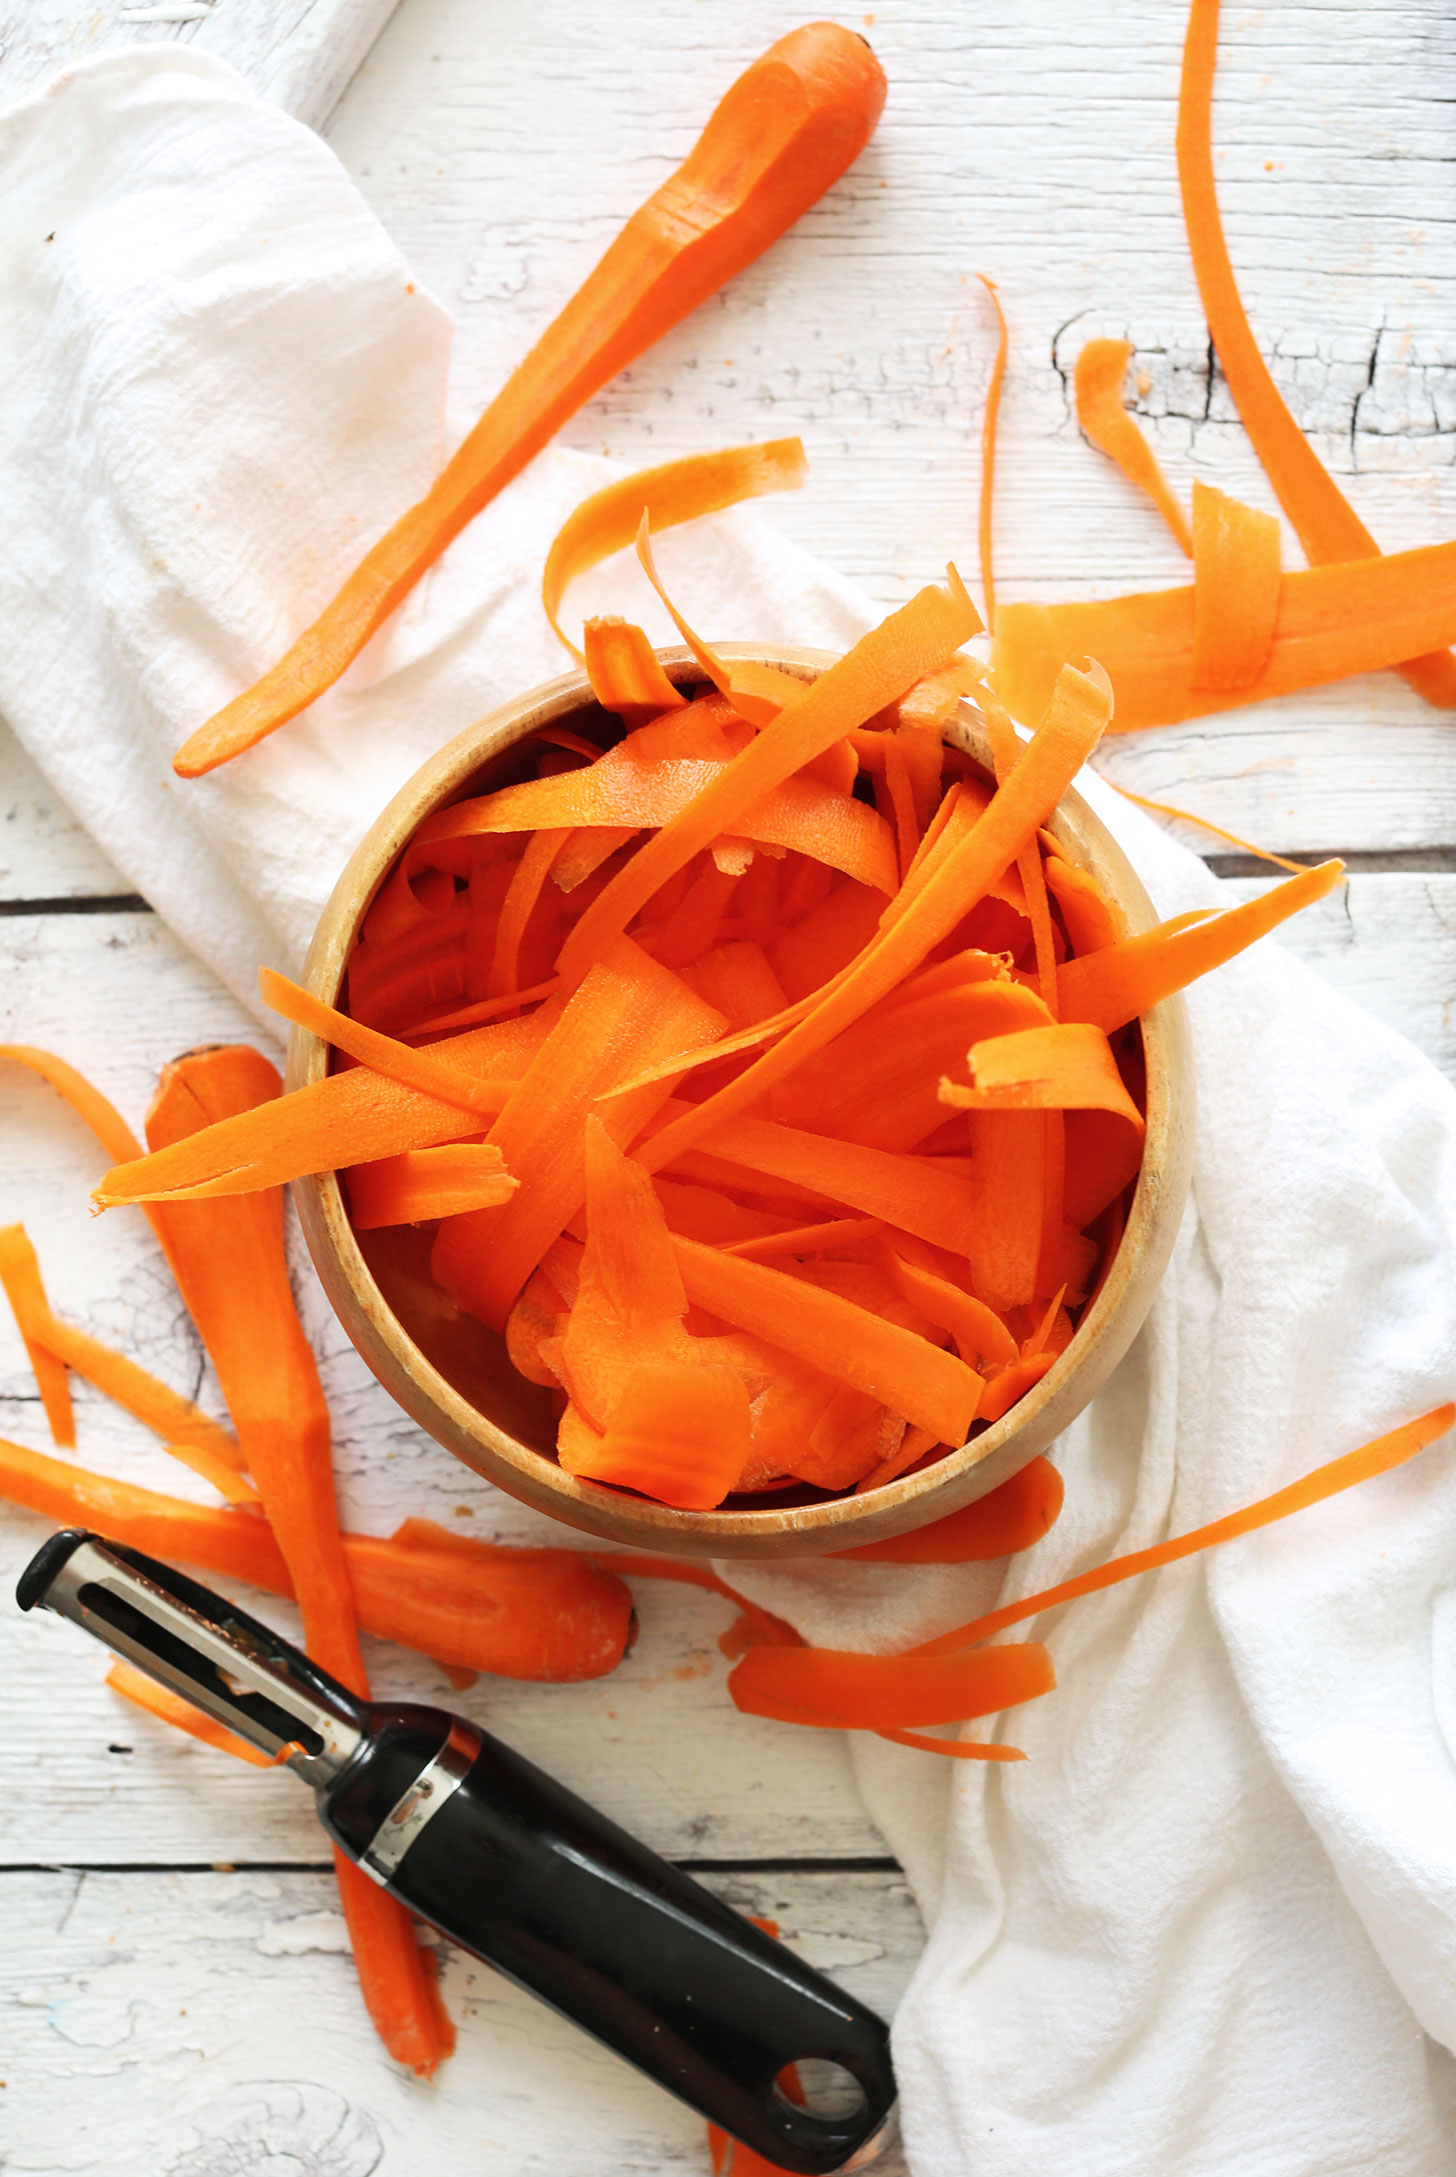 Bowl of Carrot Noodles made using a vegetable peeler